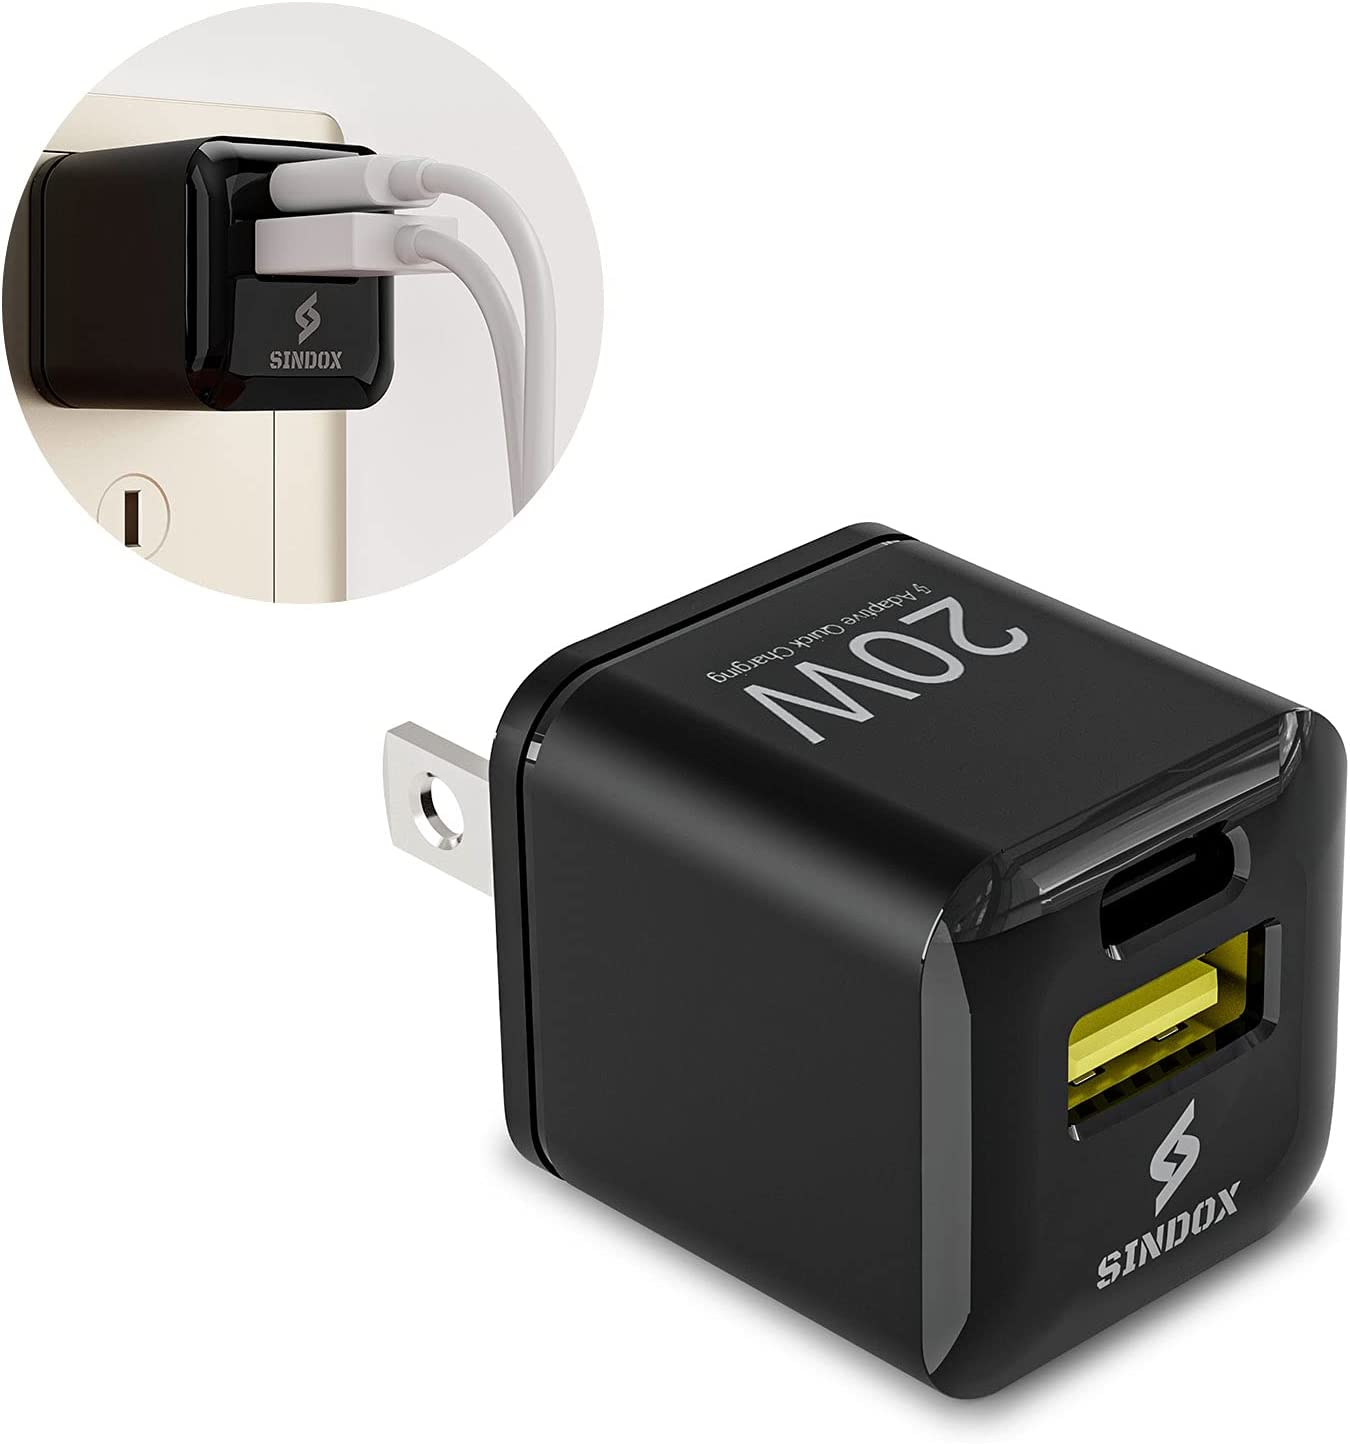 SINDOX USB A+C Wall Charger 20W PD Ultra Compact Portable Dual Fast Charging Type C Travel Plug Cube Power Adapter for iPhone 12 Mini/12/11 / Pro Max/Xs/iPad Pro/Galaxy 10/9 Note 10/9 Black